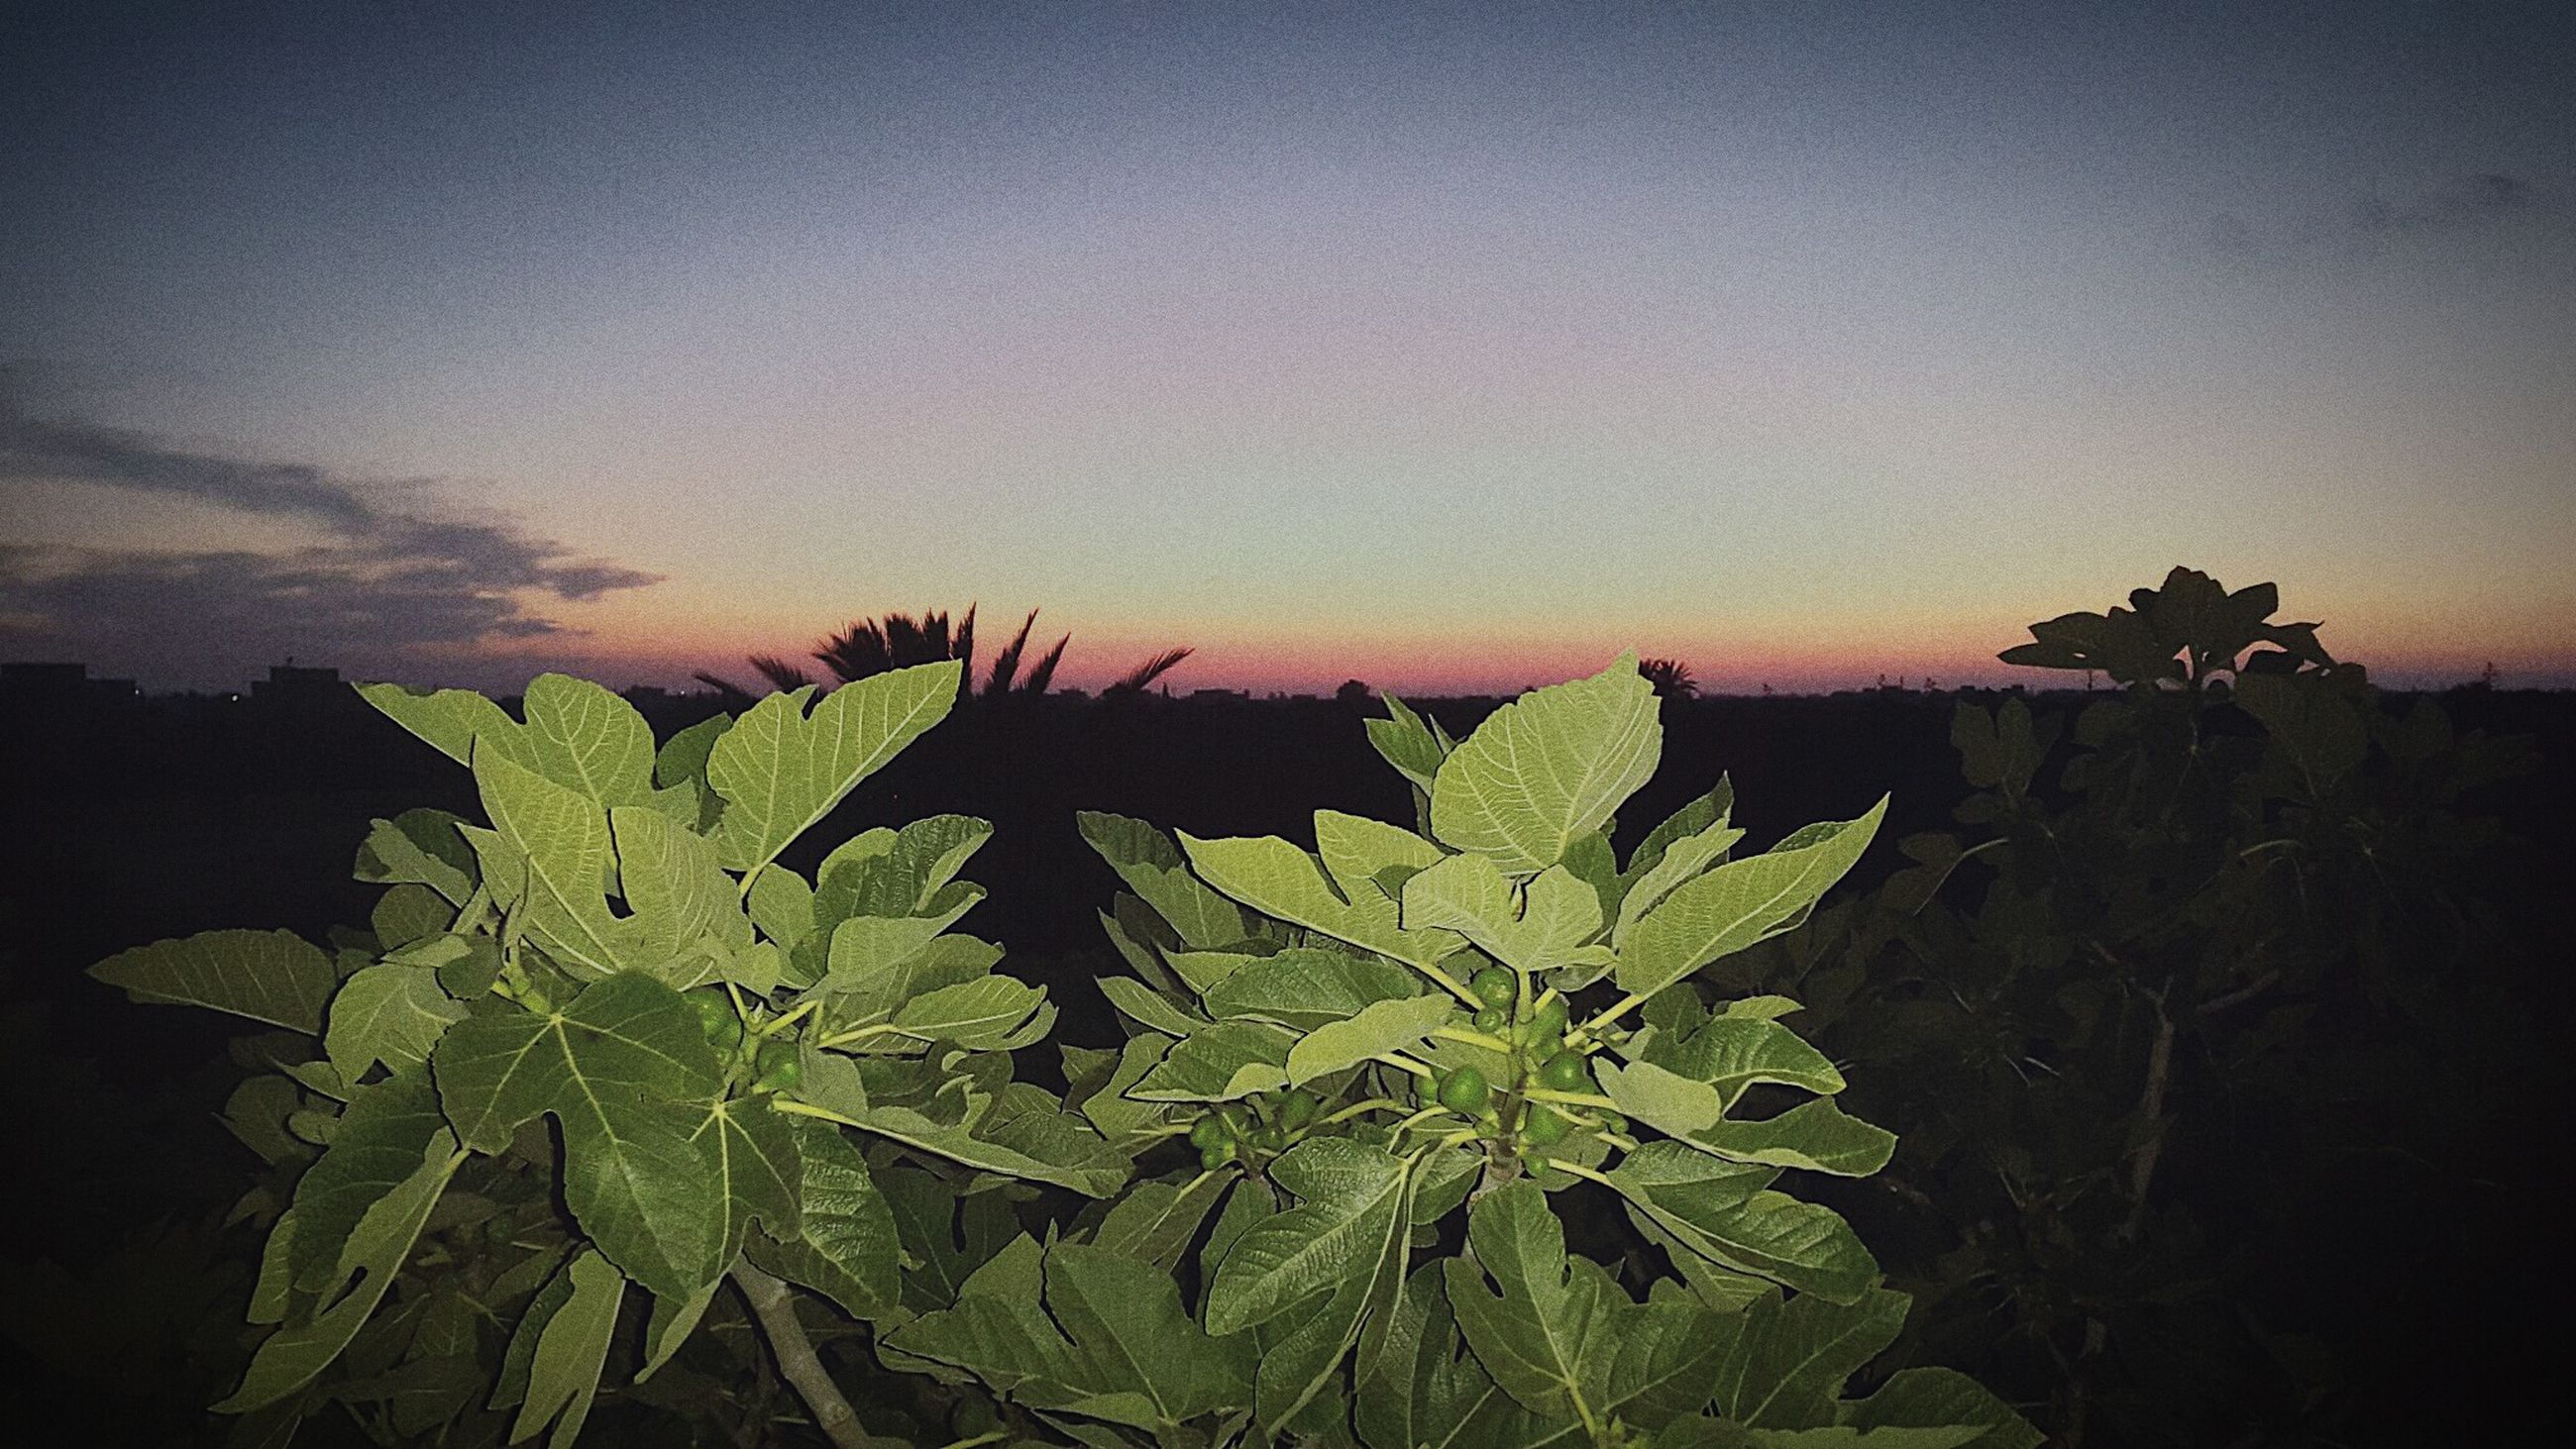 leaf, growth, beauty in nature, sunset, tranquility, plant, nature, tranquil scene, sky, silhouette, scenics, copy space, green color, dusk, clear sky, landscape, tree, outdoors, idyllic, no people